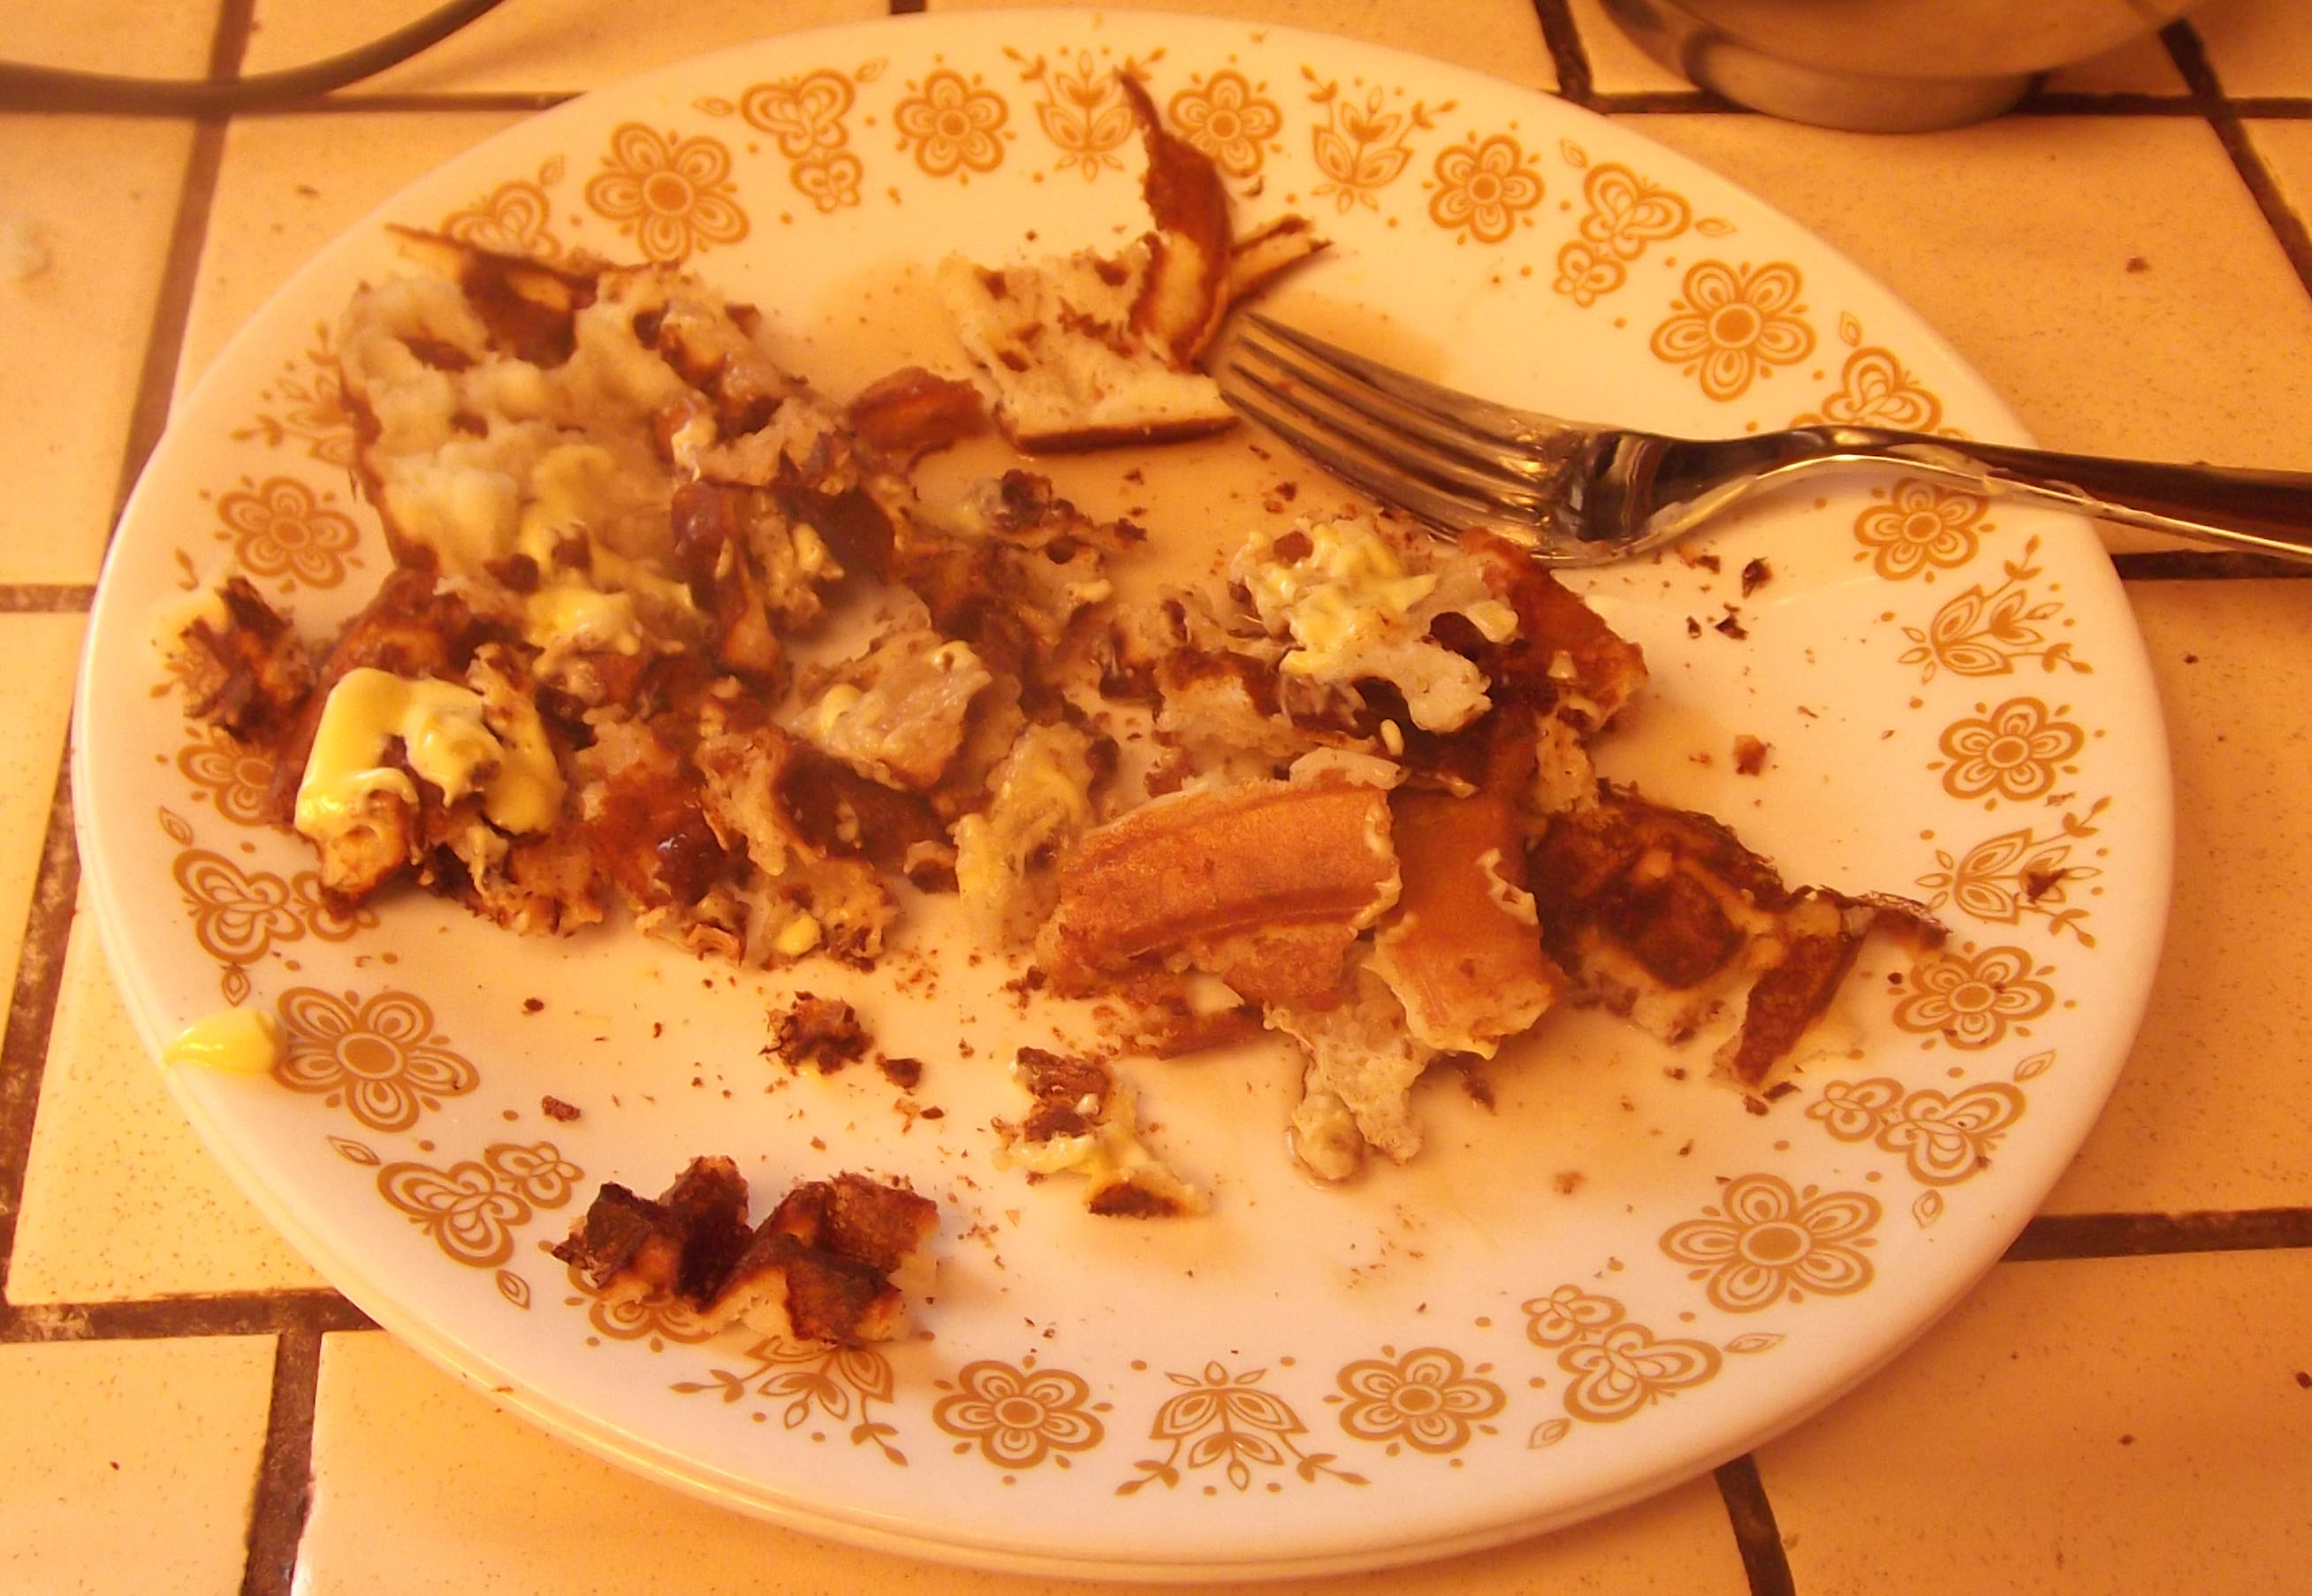 Betty Crocker Bisquick Waffle Disaster